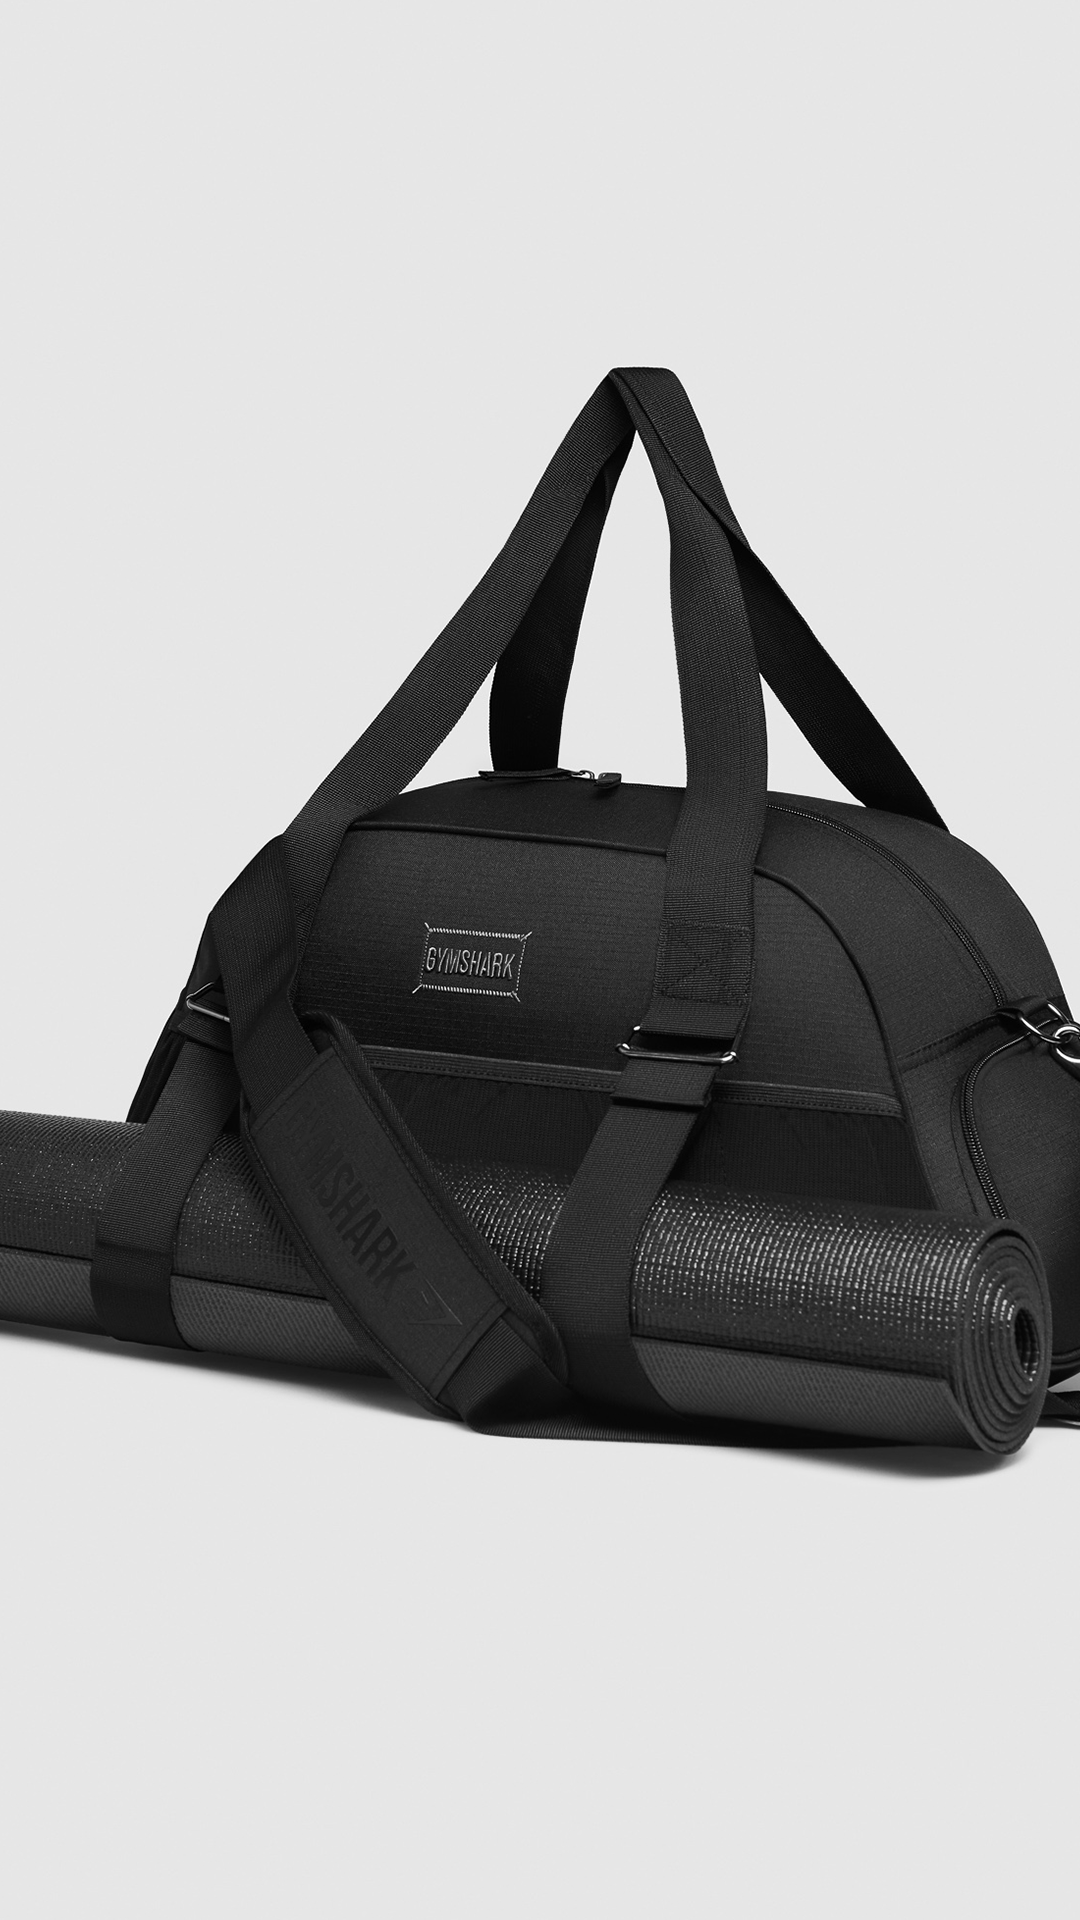 f83631bd14  Gymshark  Accessories  Bag  Gym  Fitness  Workout  Exercise  Black   Monochrome  Holdall